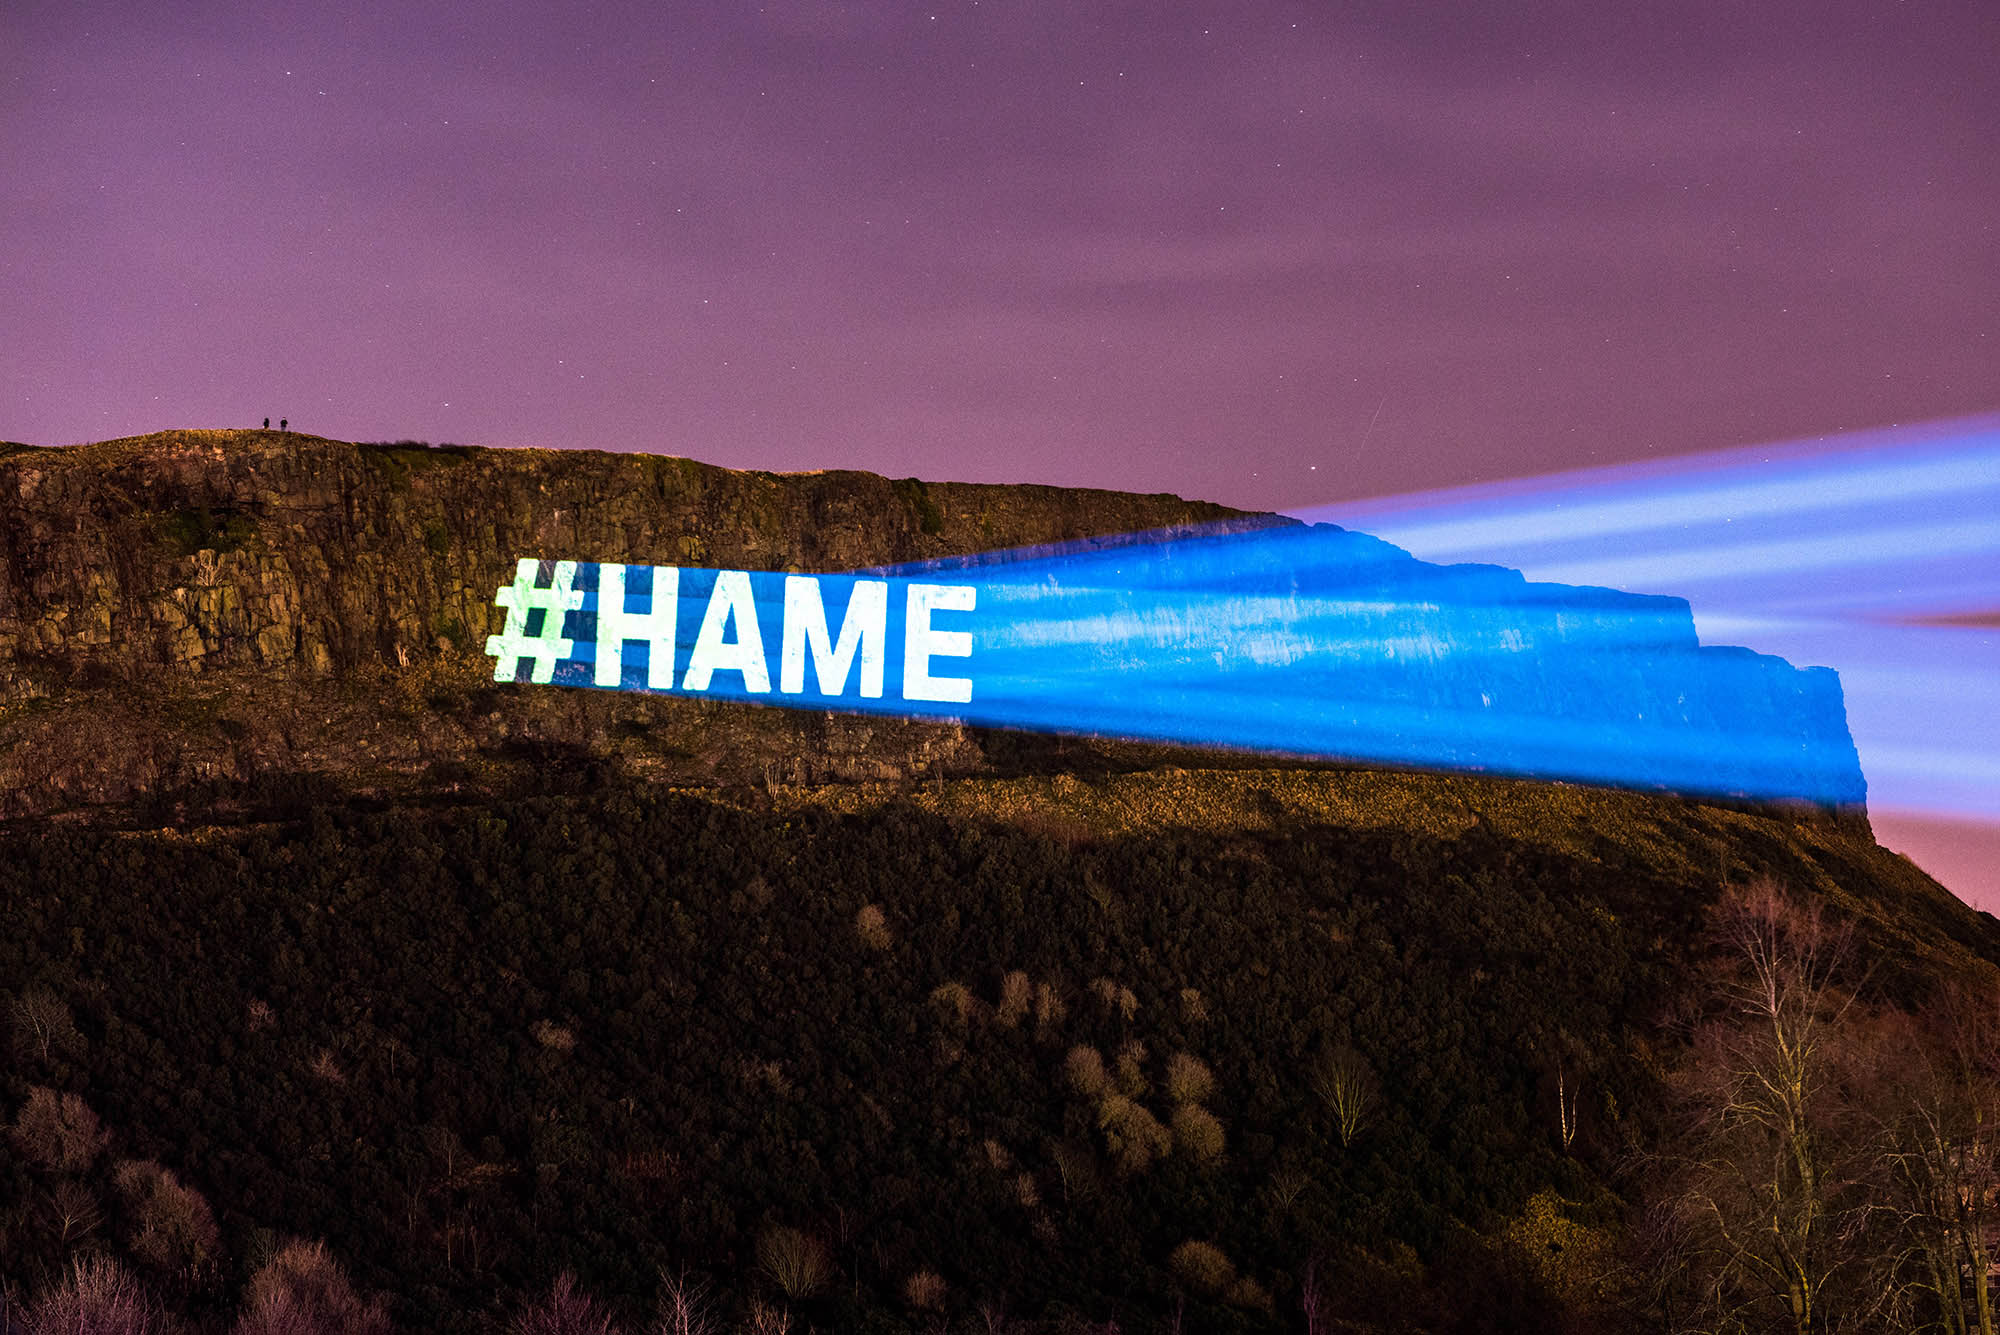 Torchlight Procession Projections, #hame beamed on Edinburgh Crags